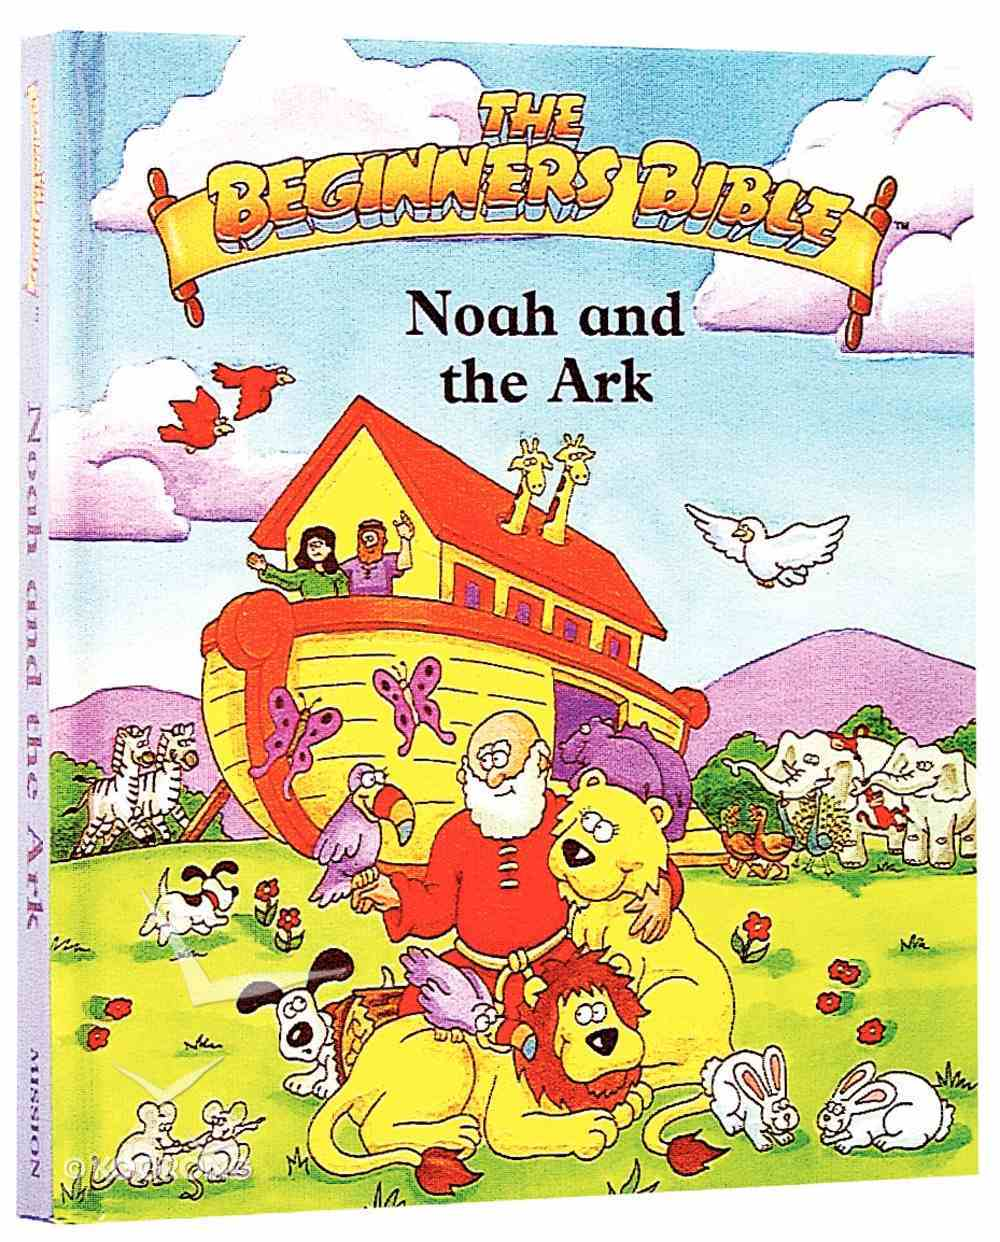 Noah and the Ark (Beginner's Bible Series) Hardback